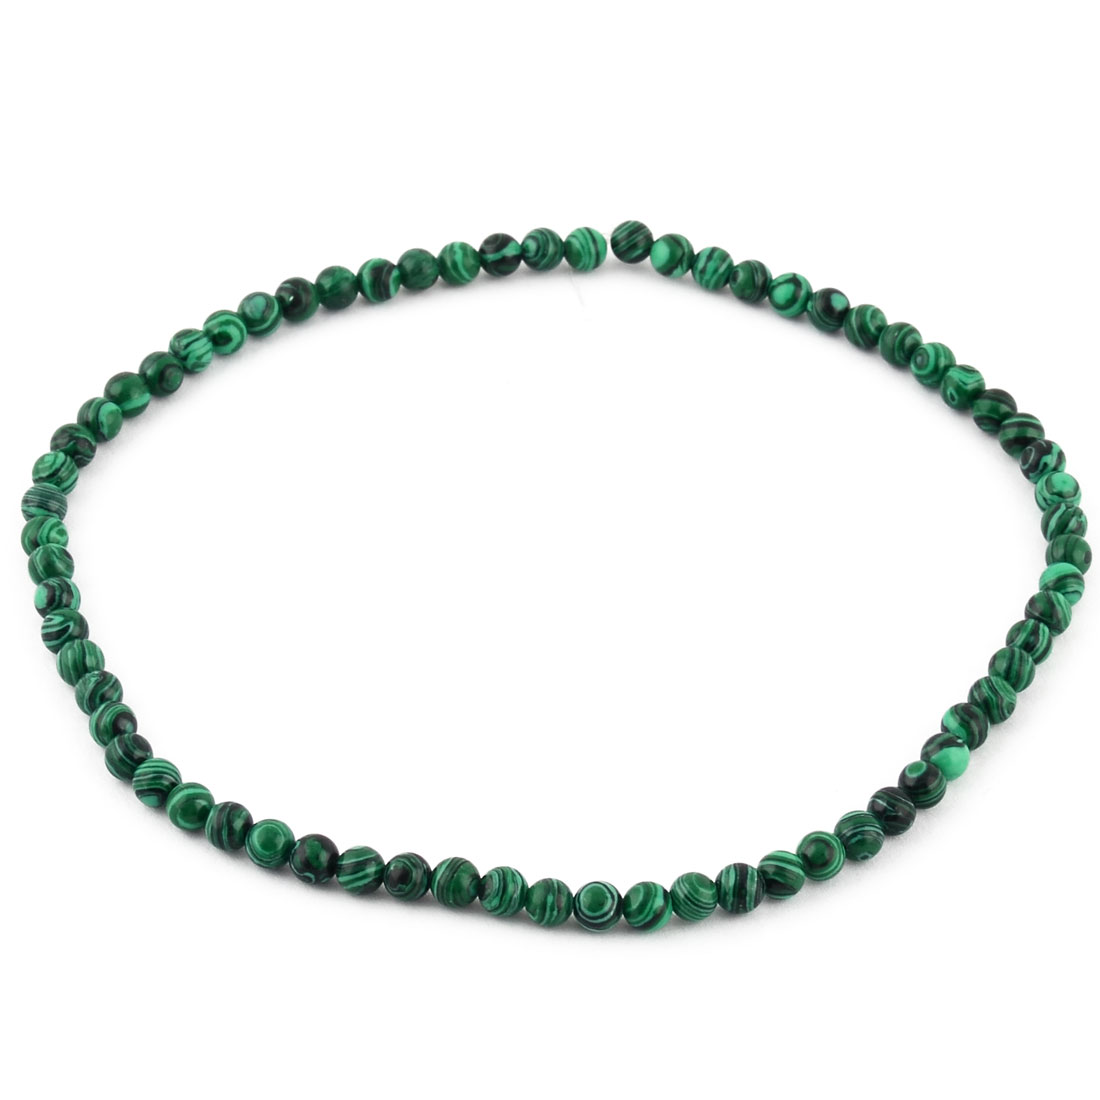 Malachite Pattern Beading Decor Necklace Bracelet Making Beads Strand 0.6cm Dia